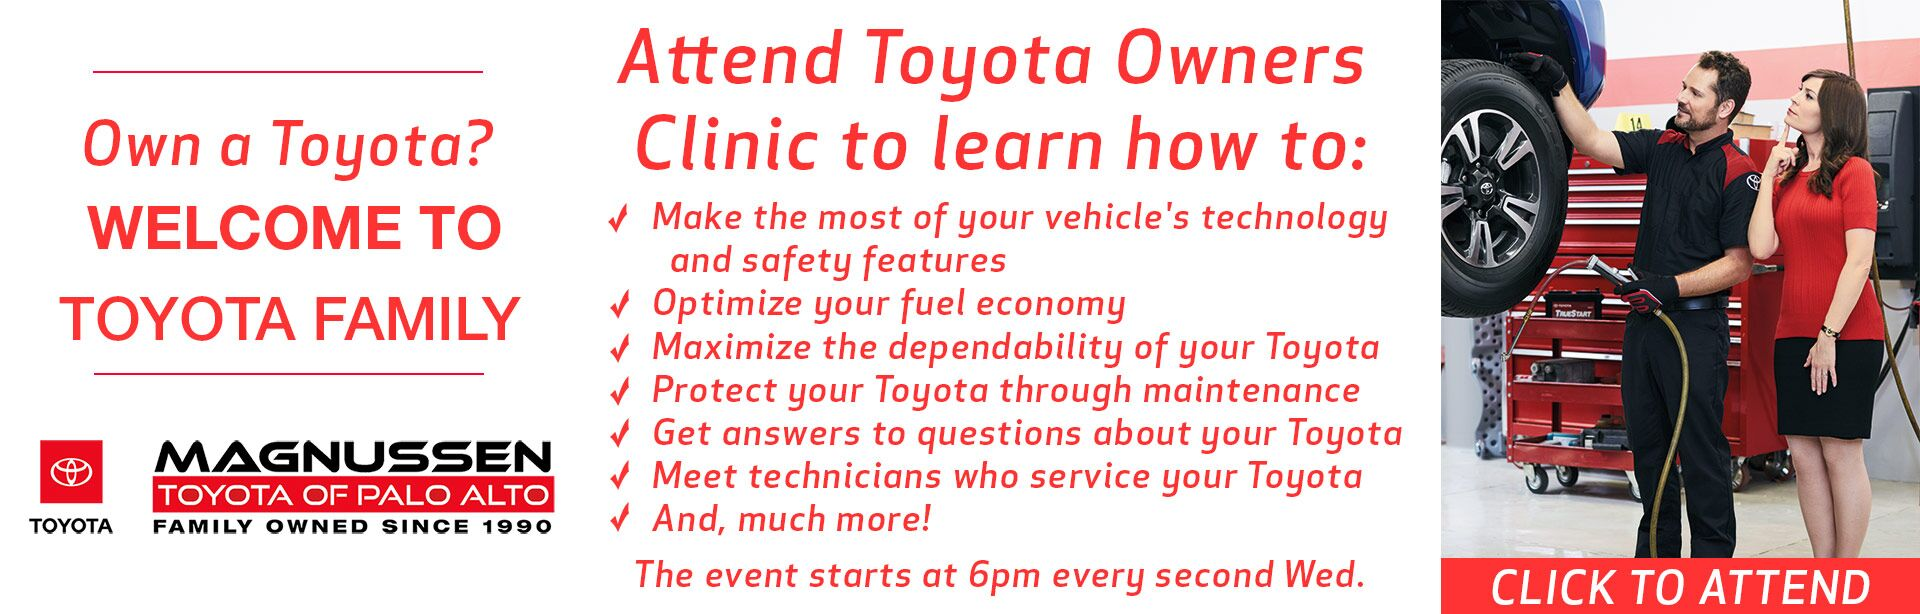 Toyota Owners' Clinic